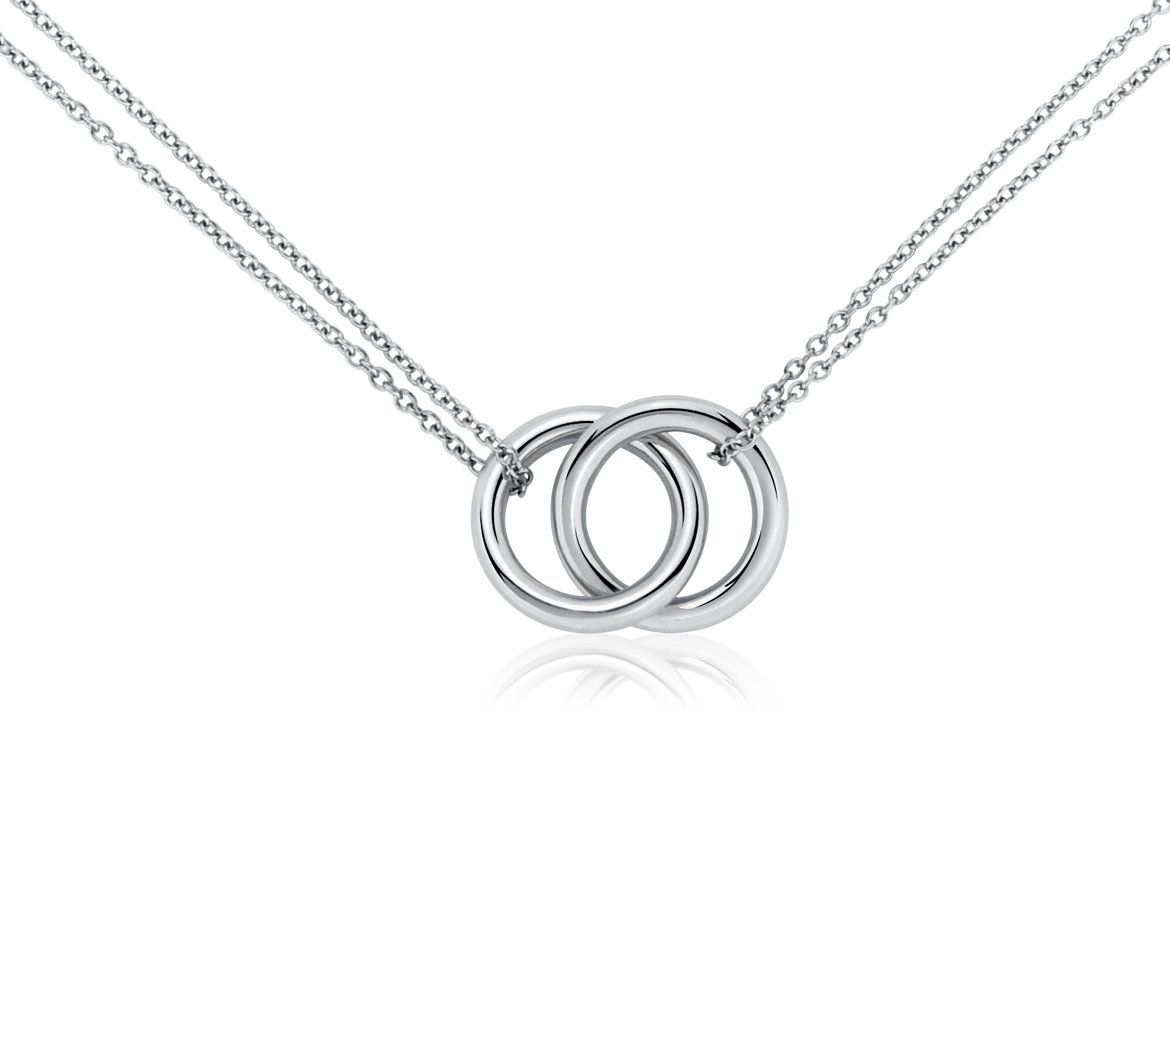 1d1727d21b7 Infinity Rings Necklace In Platinum | My Style | Ring necklace ...